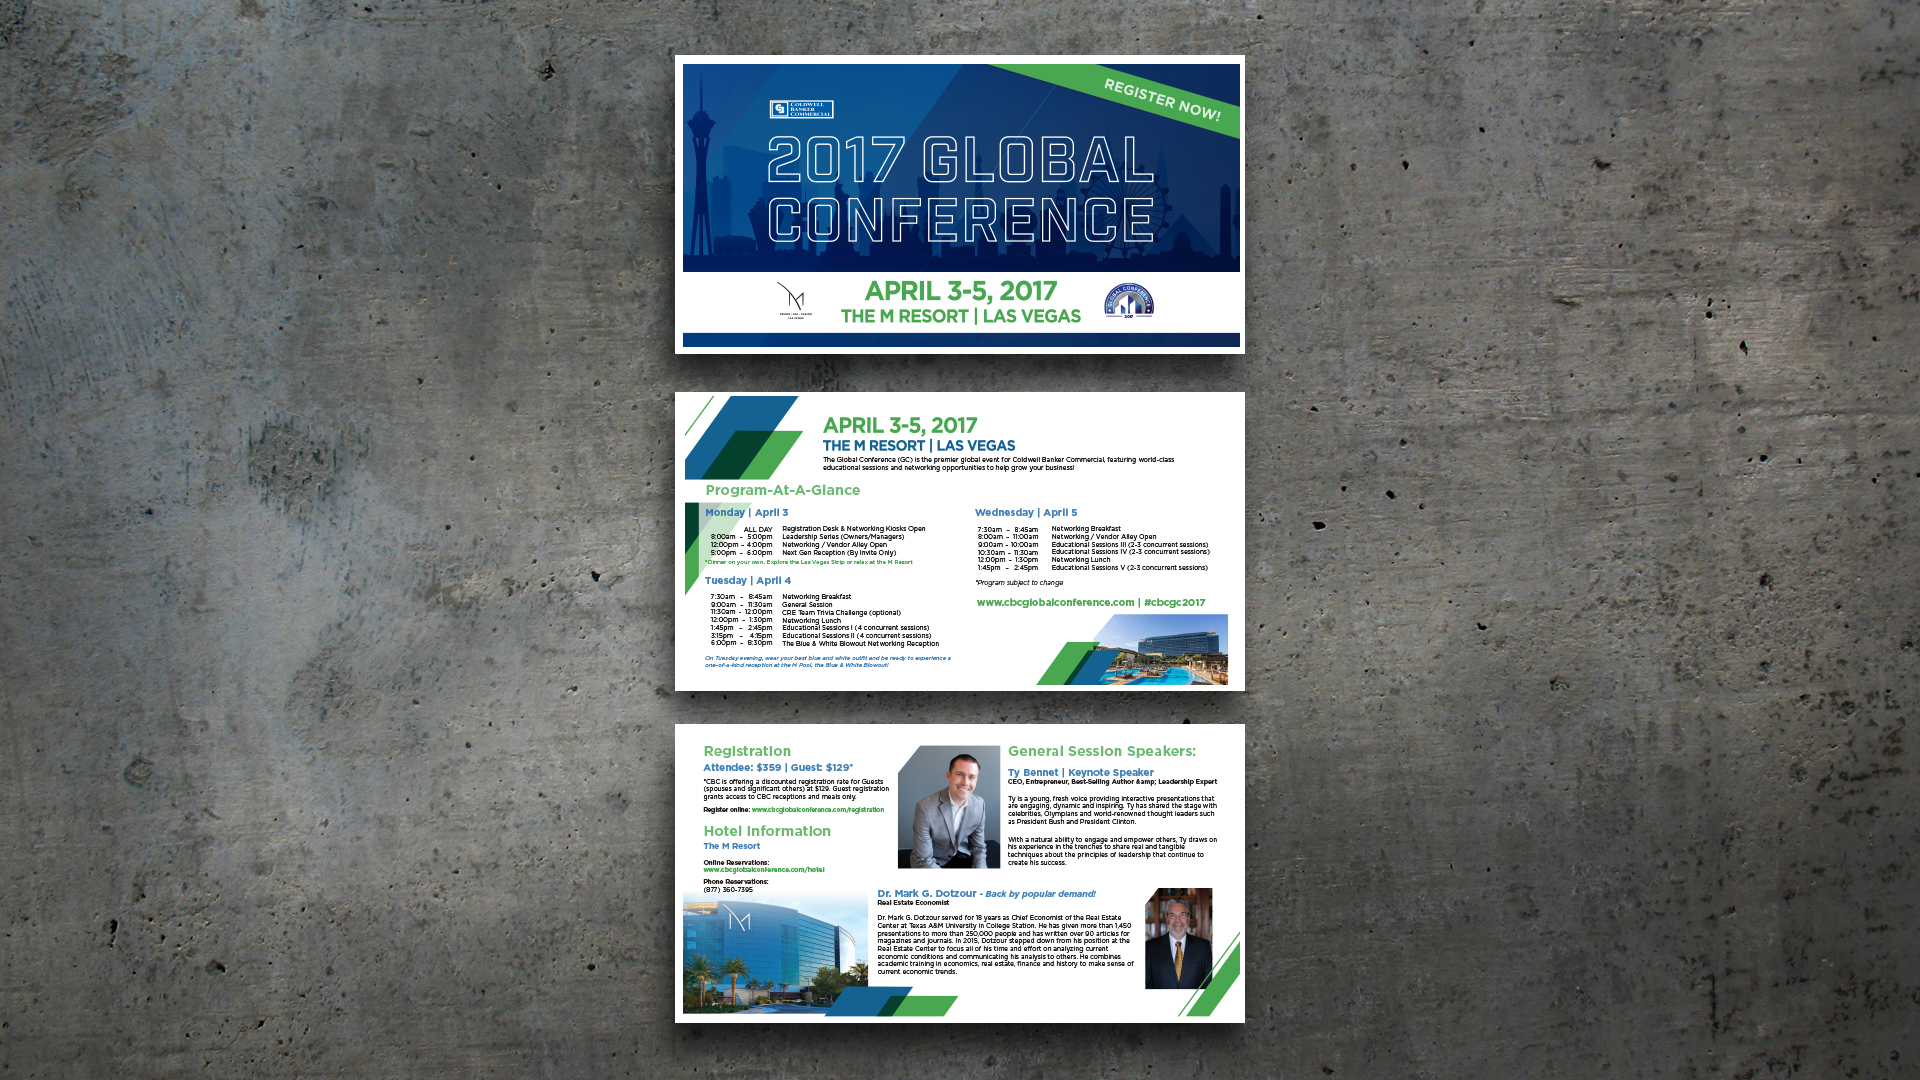 Conference Branding – CBC Annual Conference 2017